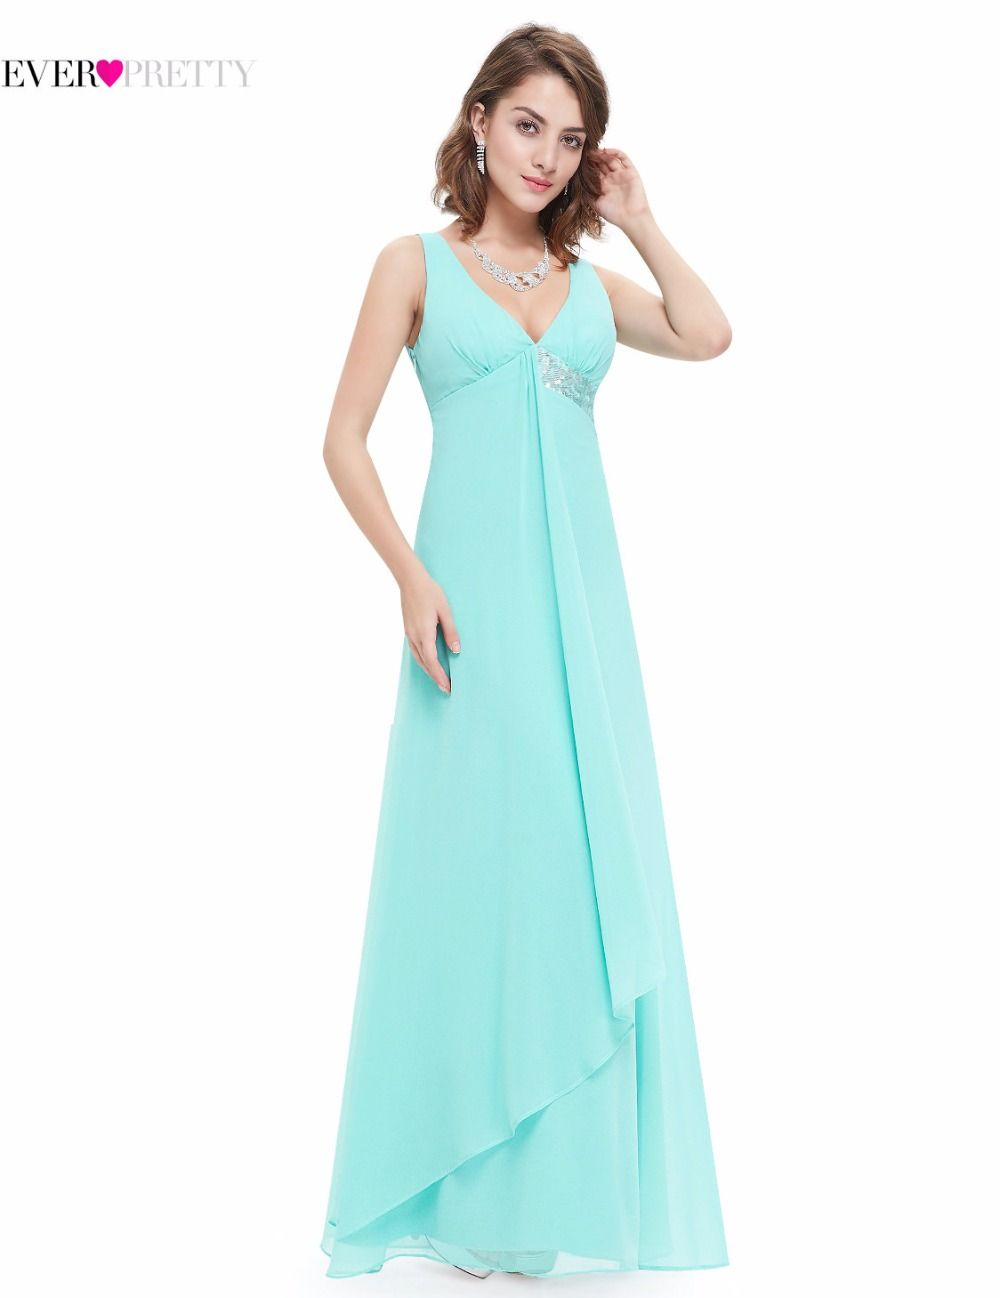 Clearance Sale] Bridesmaid Dresses Ever Pretty HE09981 V-neck Flow ...